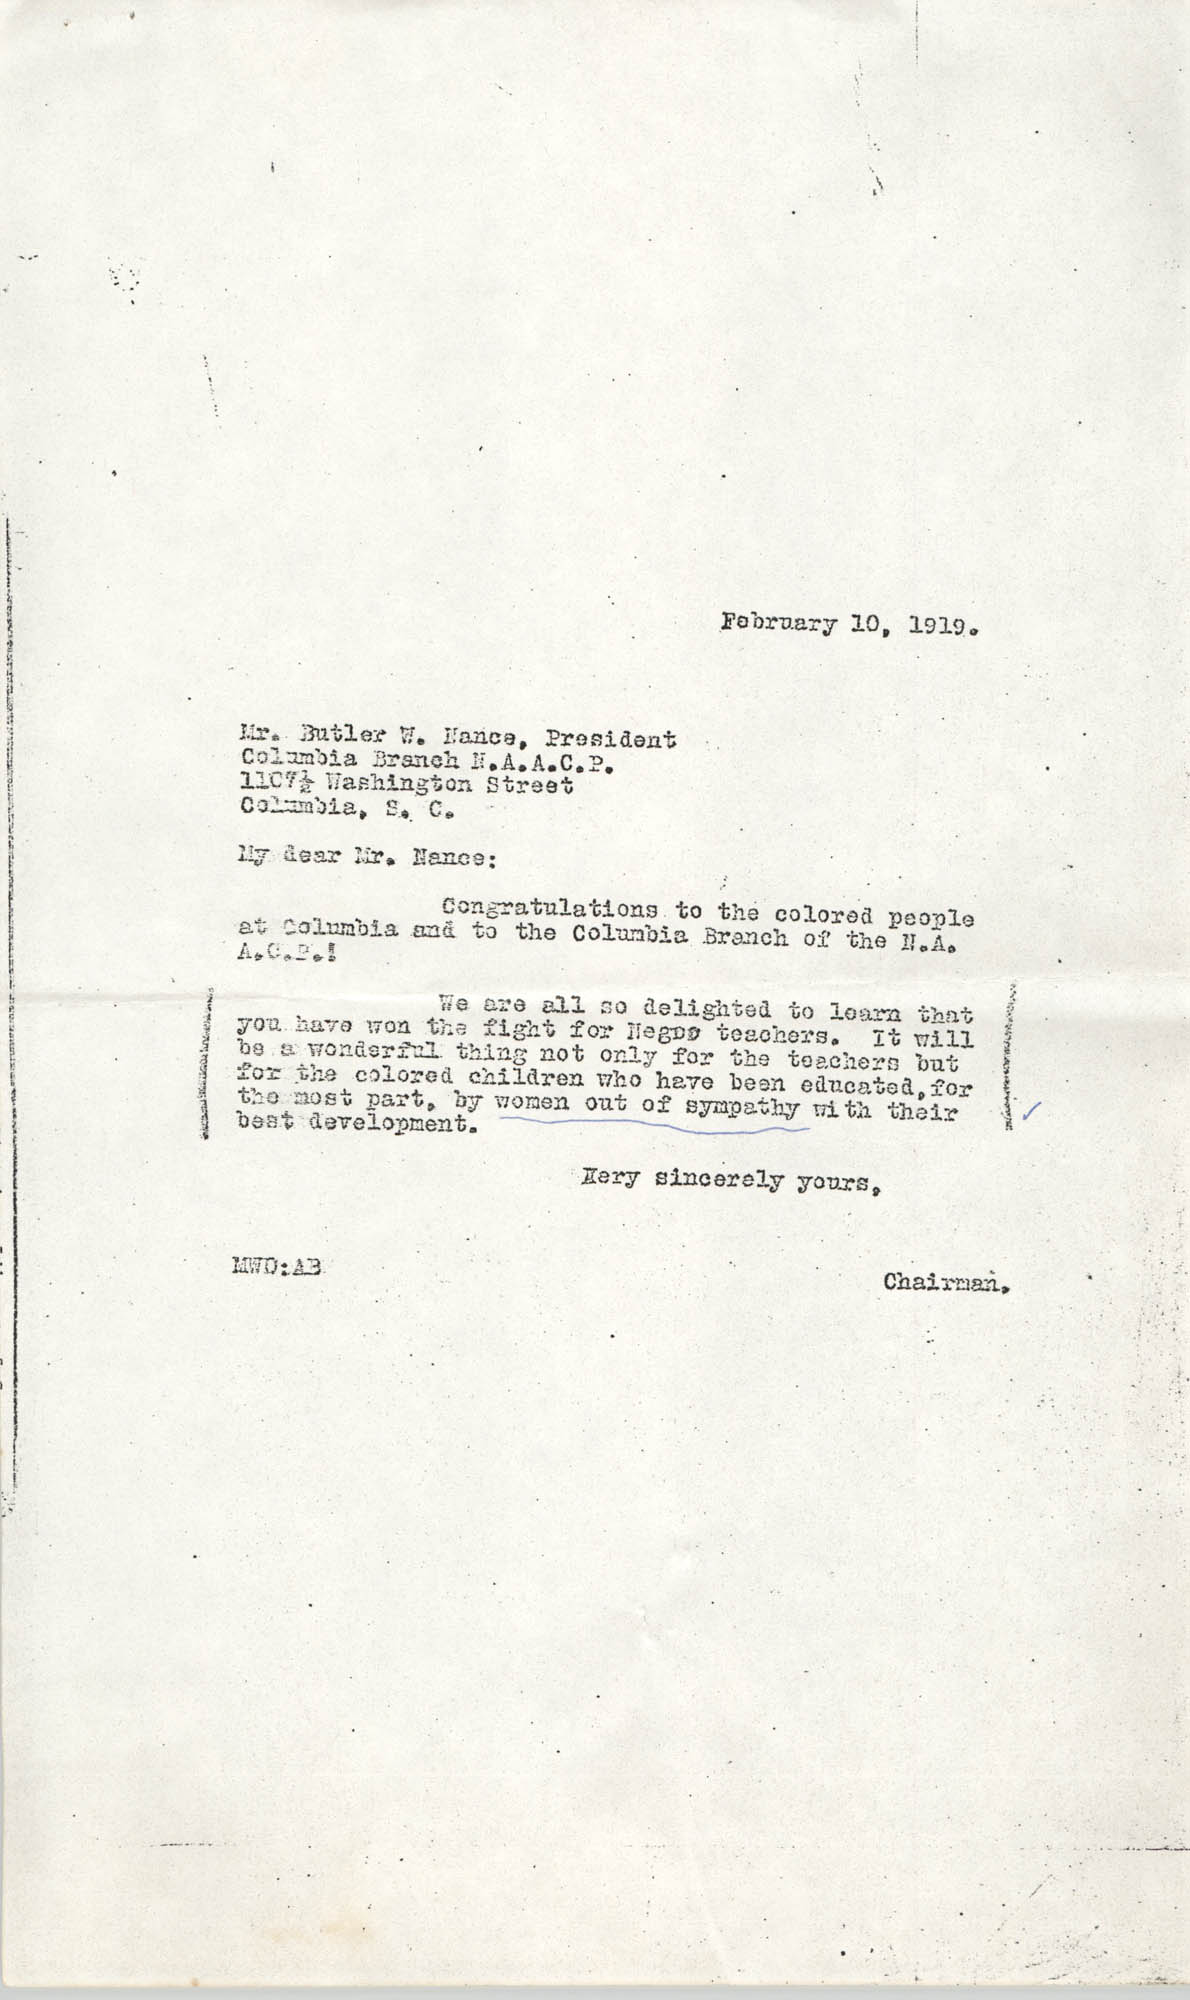 Letter to Butler W. Nance, February 10, 1919